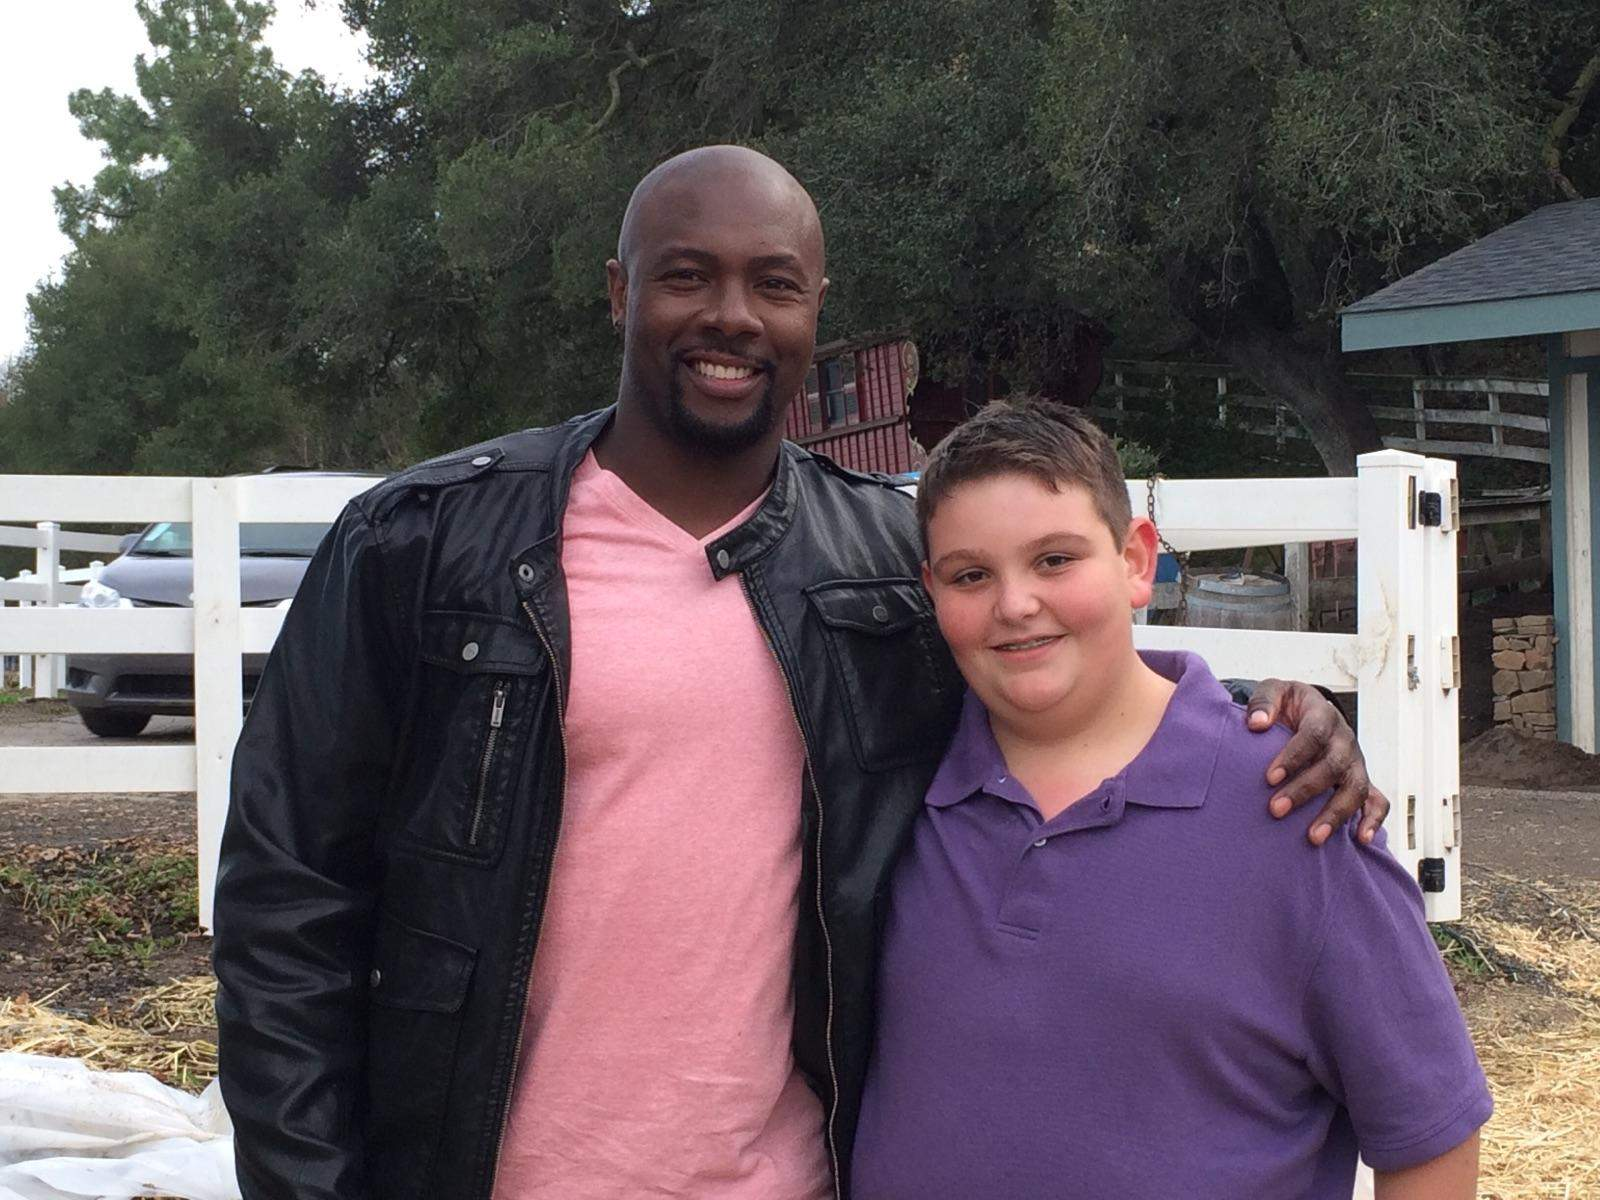 Josh Loyd of Marion poses for the camera with Eddie Jackson, co-host of the Food Network's 'Kids BBQ Championship.'